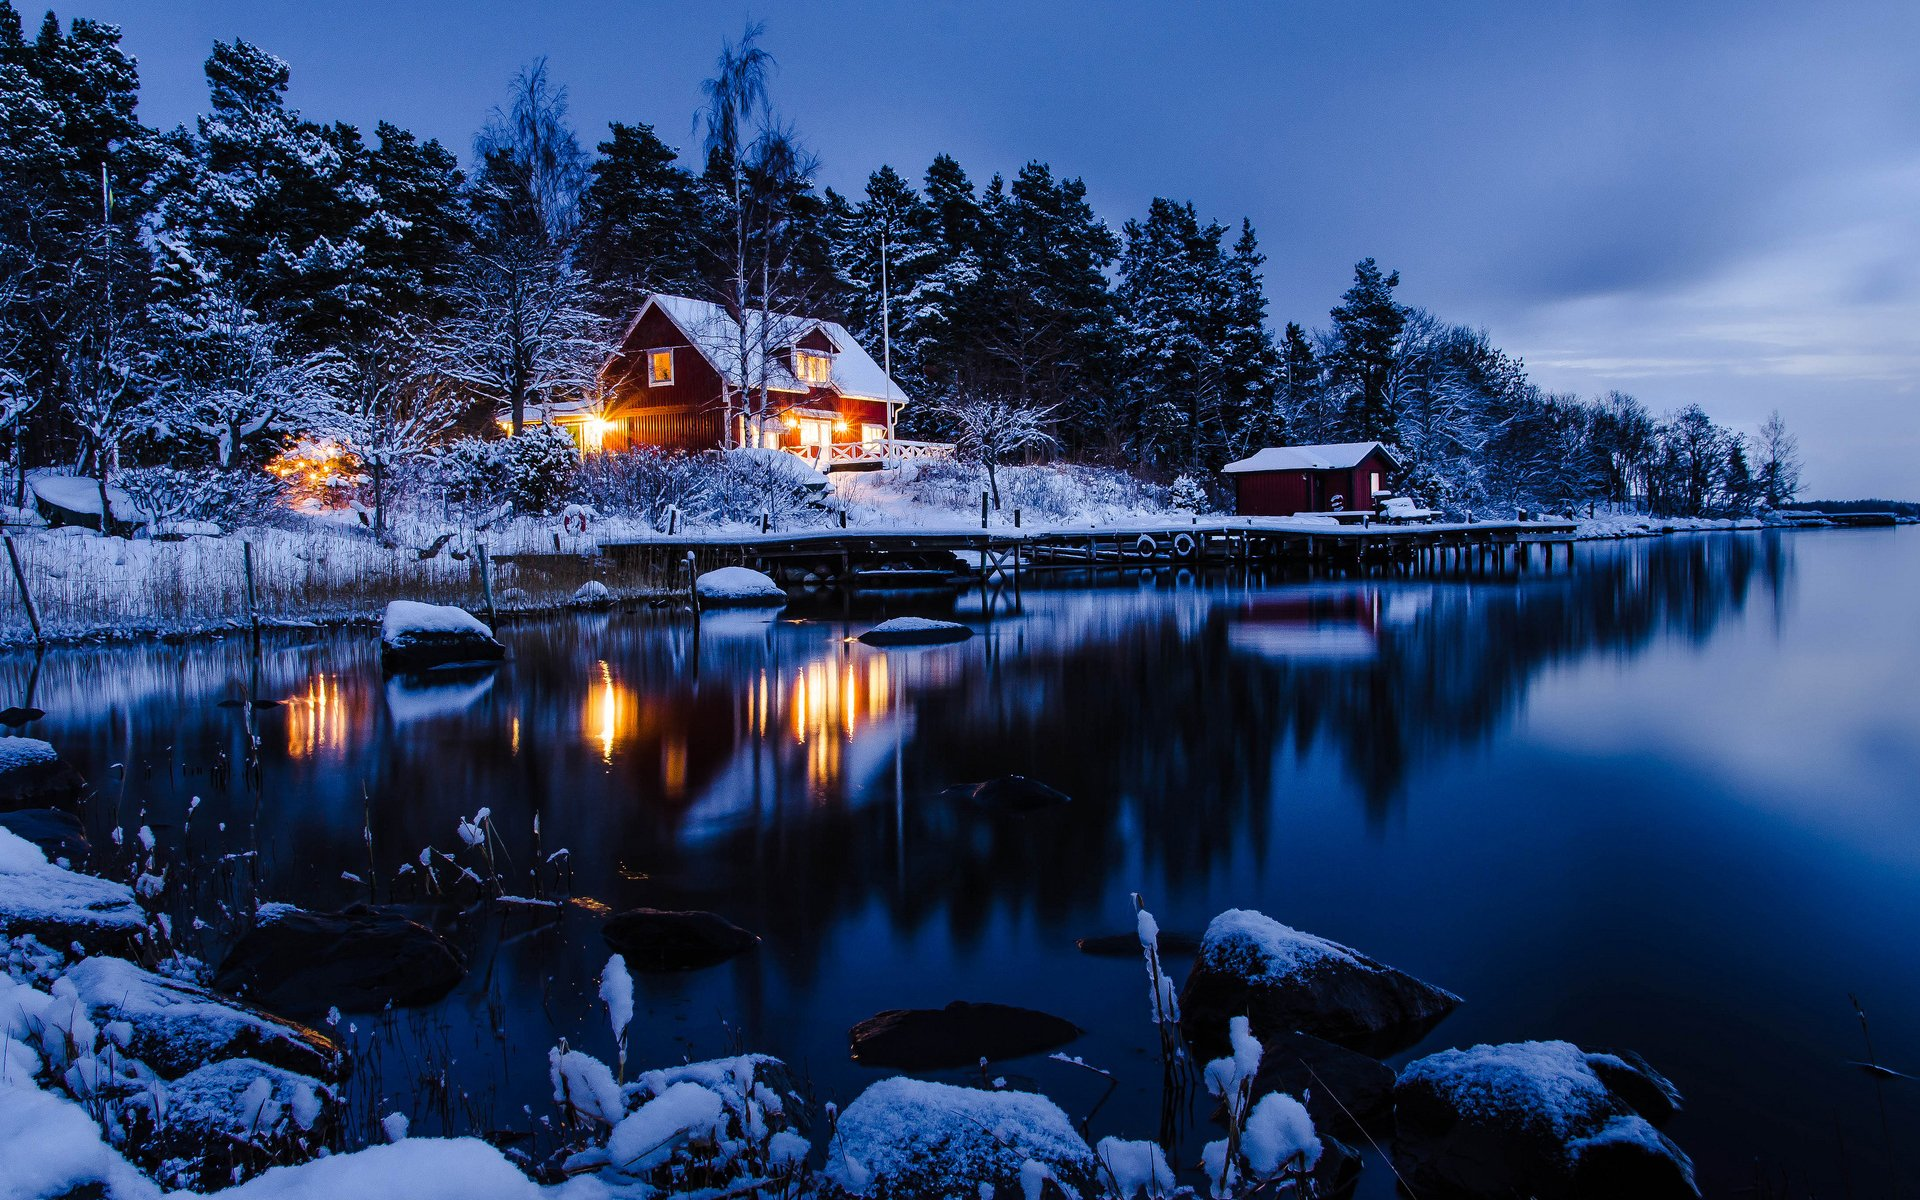 Winter Night Desktop Wallpaper 1920x1200